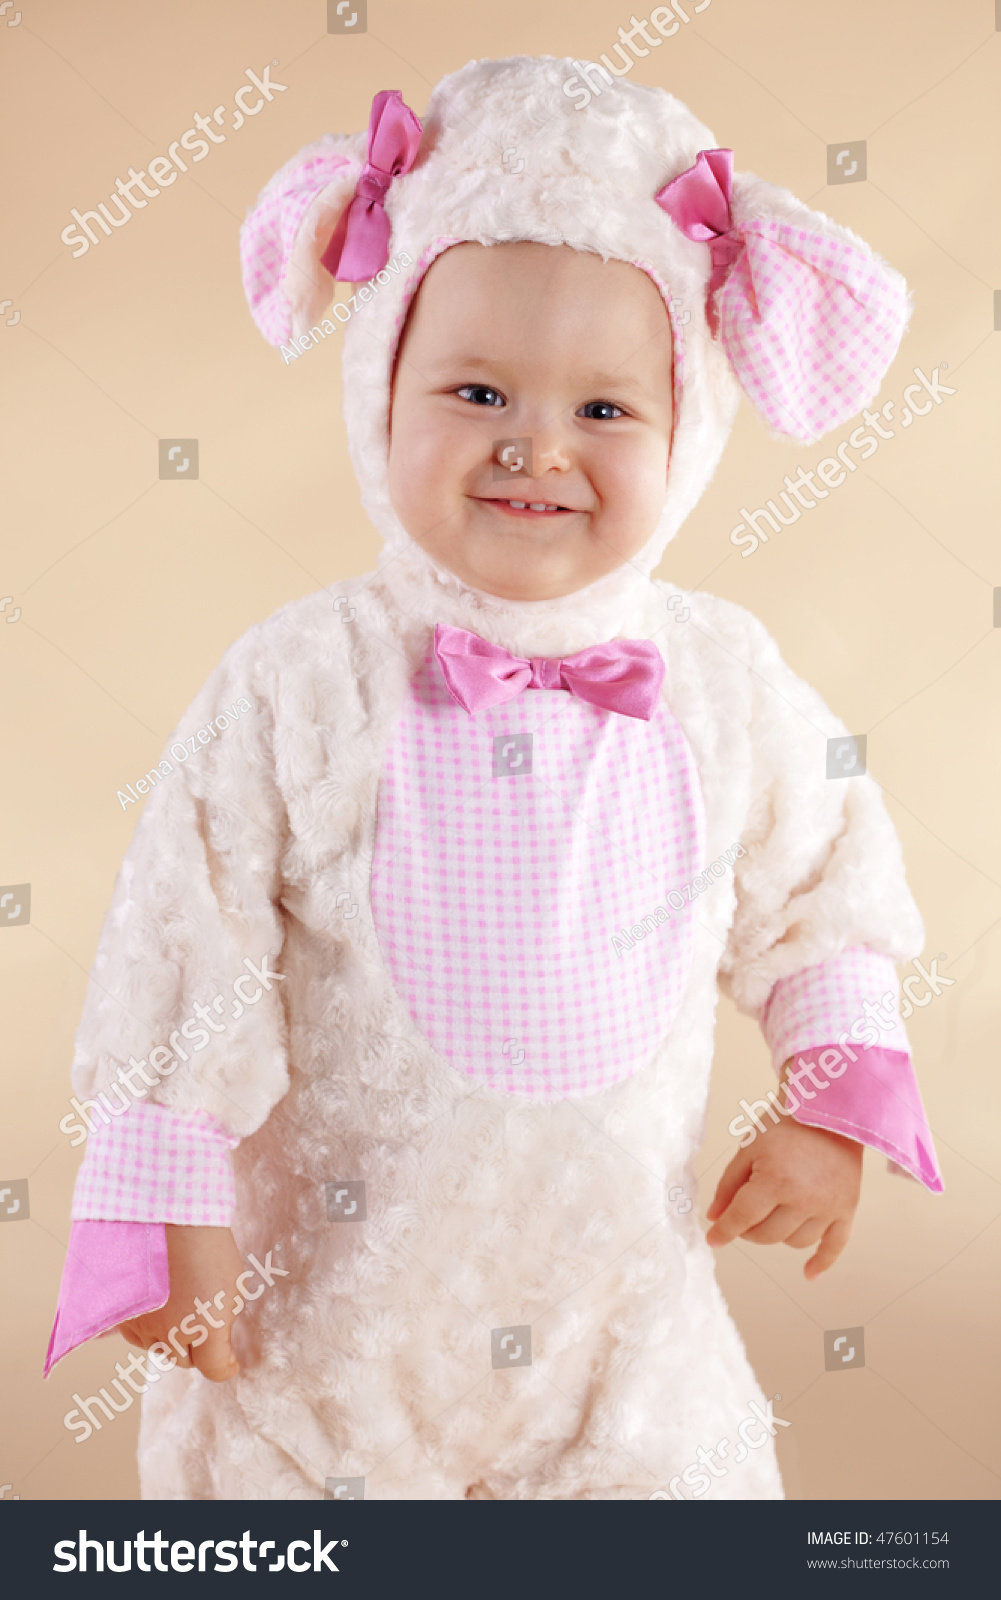 very cute baby wearing sheep costume stock photo (edit now) 47601154